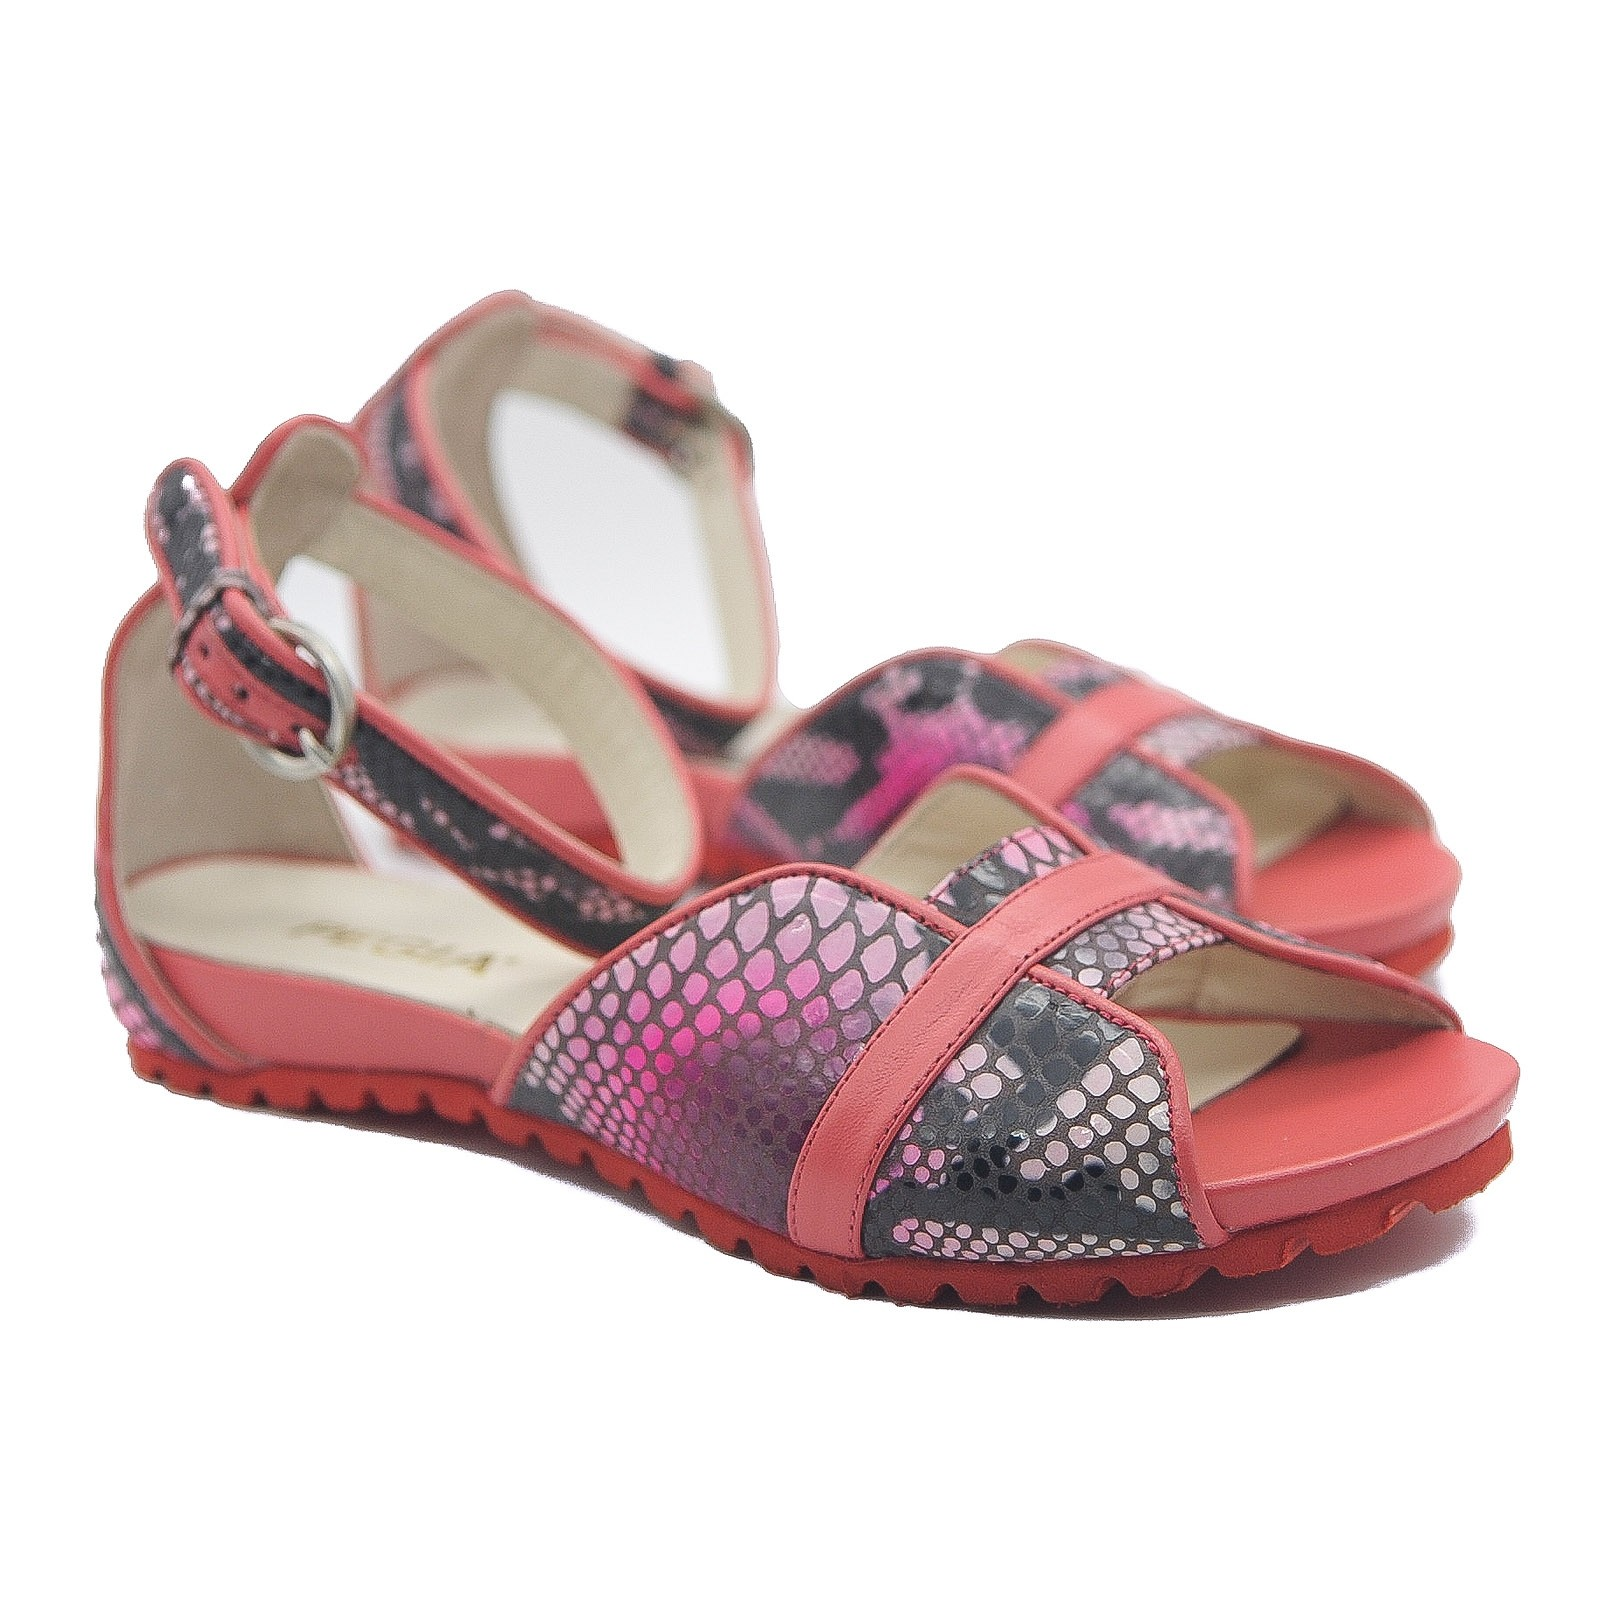 Pegia Gladiator Sandals Black and Pink Flat Open Toe Snake Effect